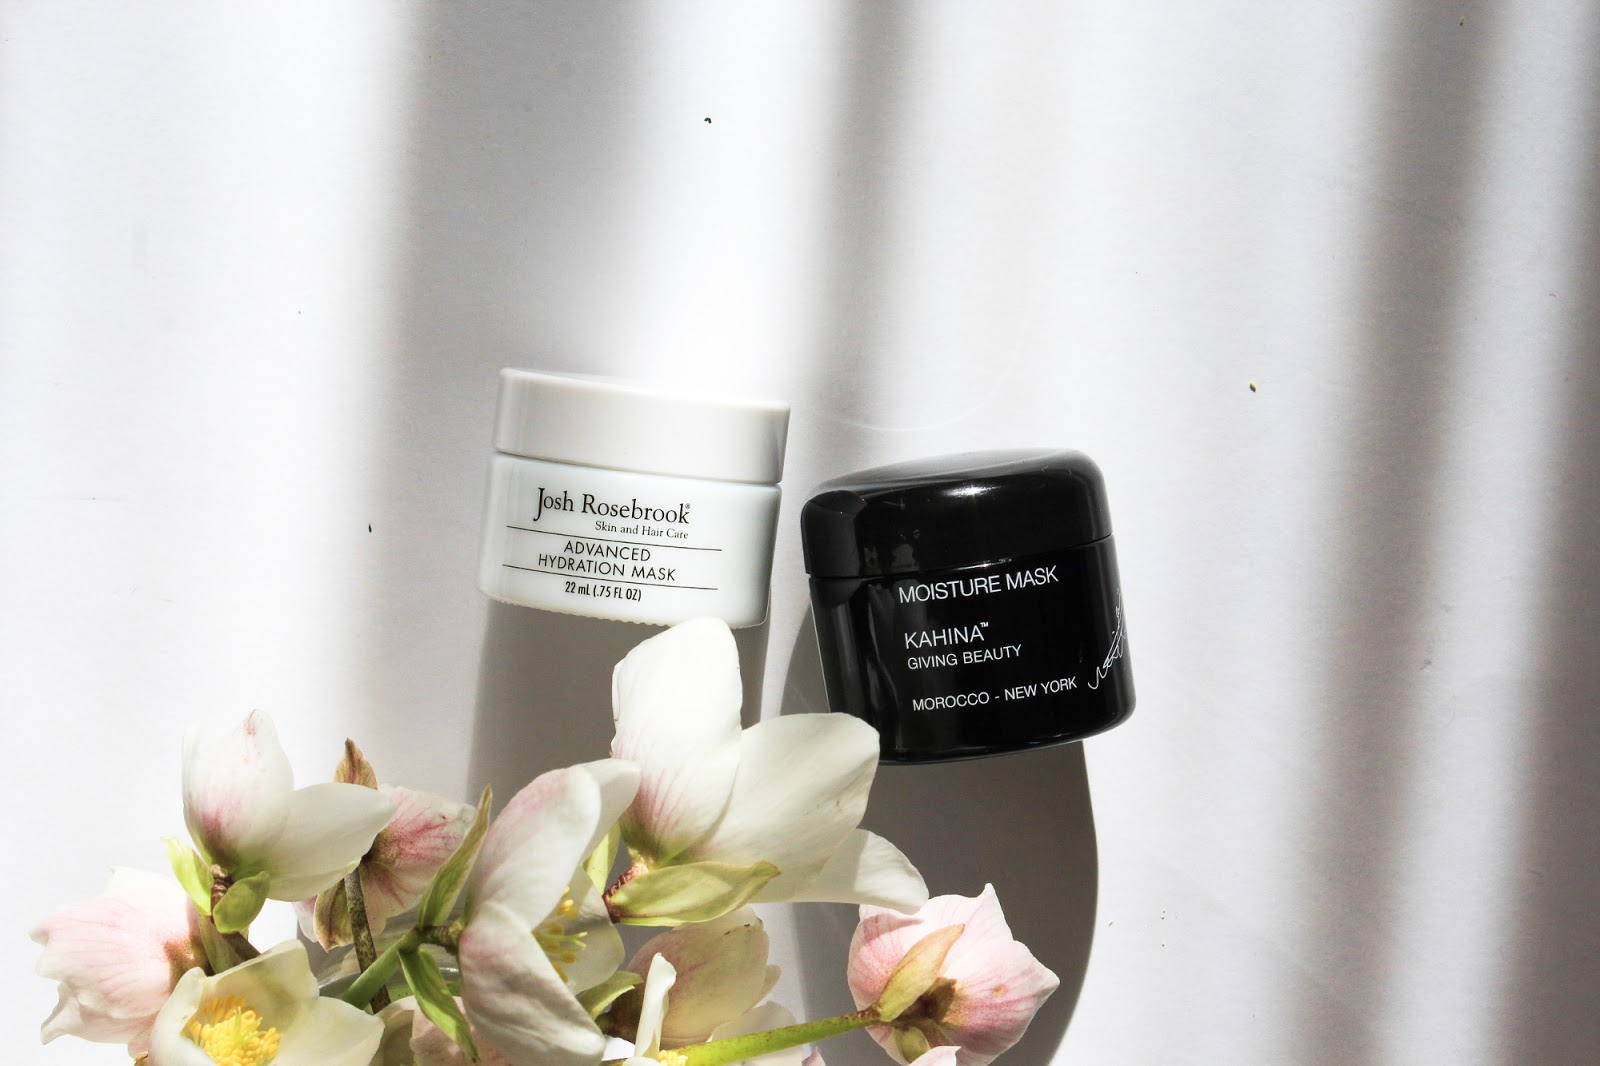 Josh Rosebrook Advanced Hydration Mask, Kahina Giving Beauty Moisture Mask. Beauty Heroes, Clean Beauty Box